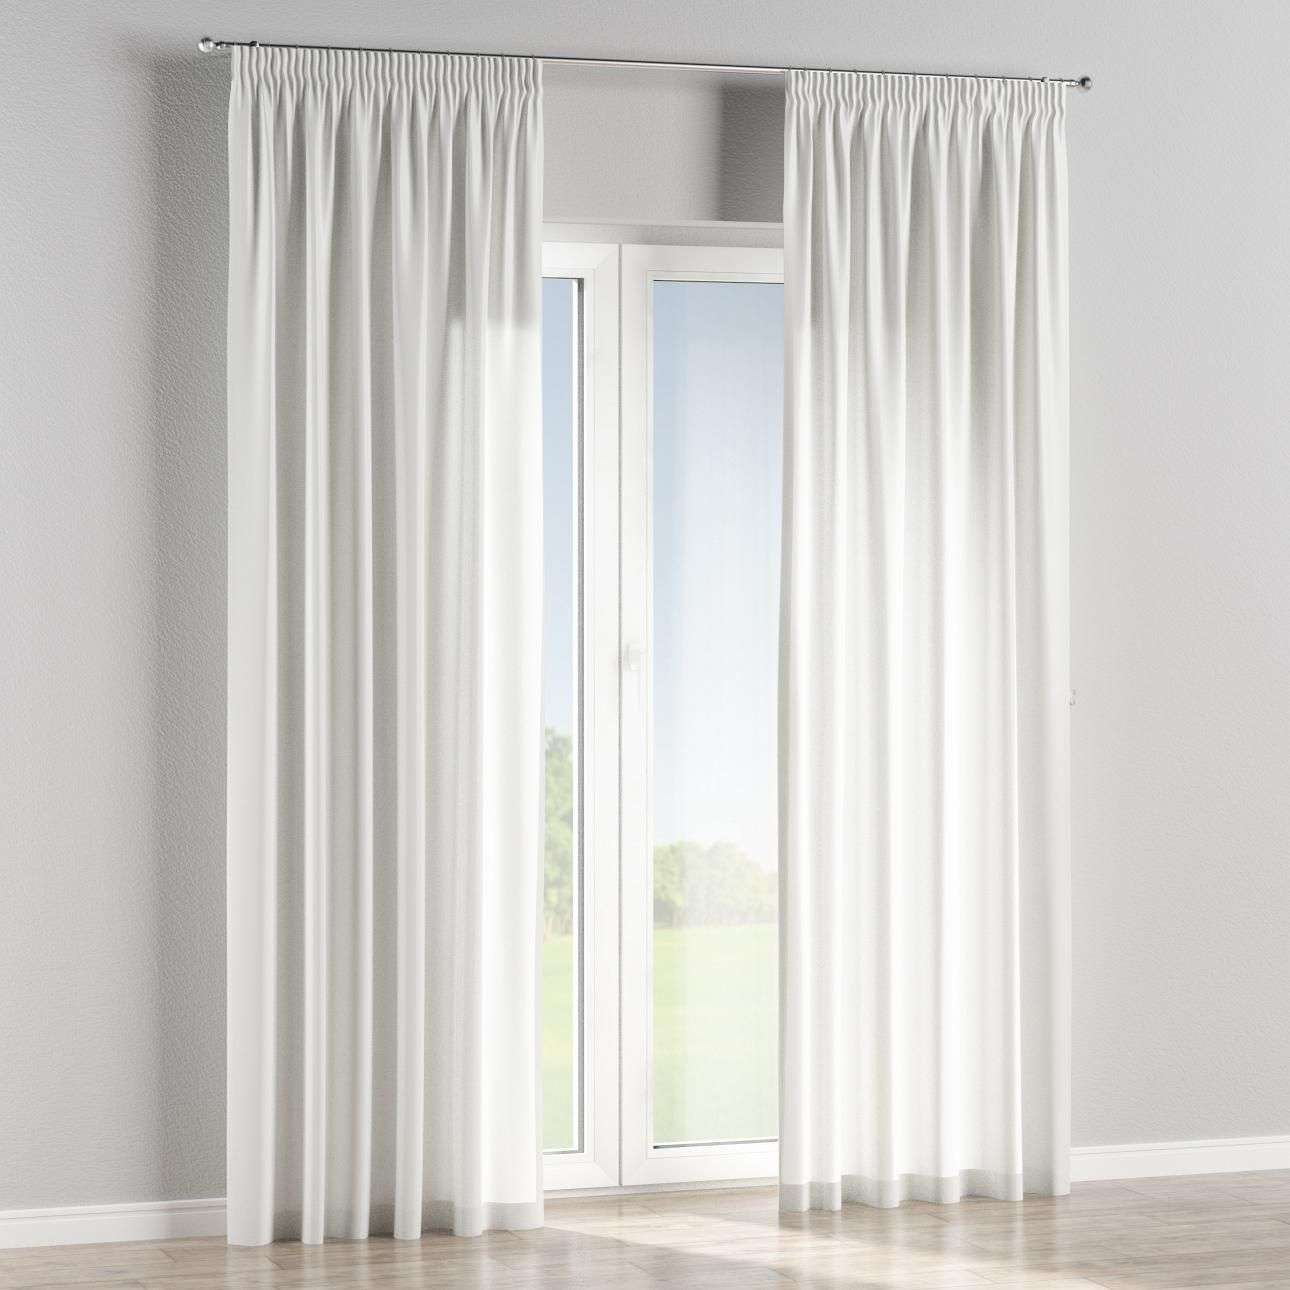 Pencil pleat curtains in collection SALE, fabric: 141-09